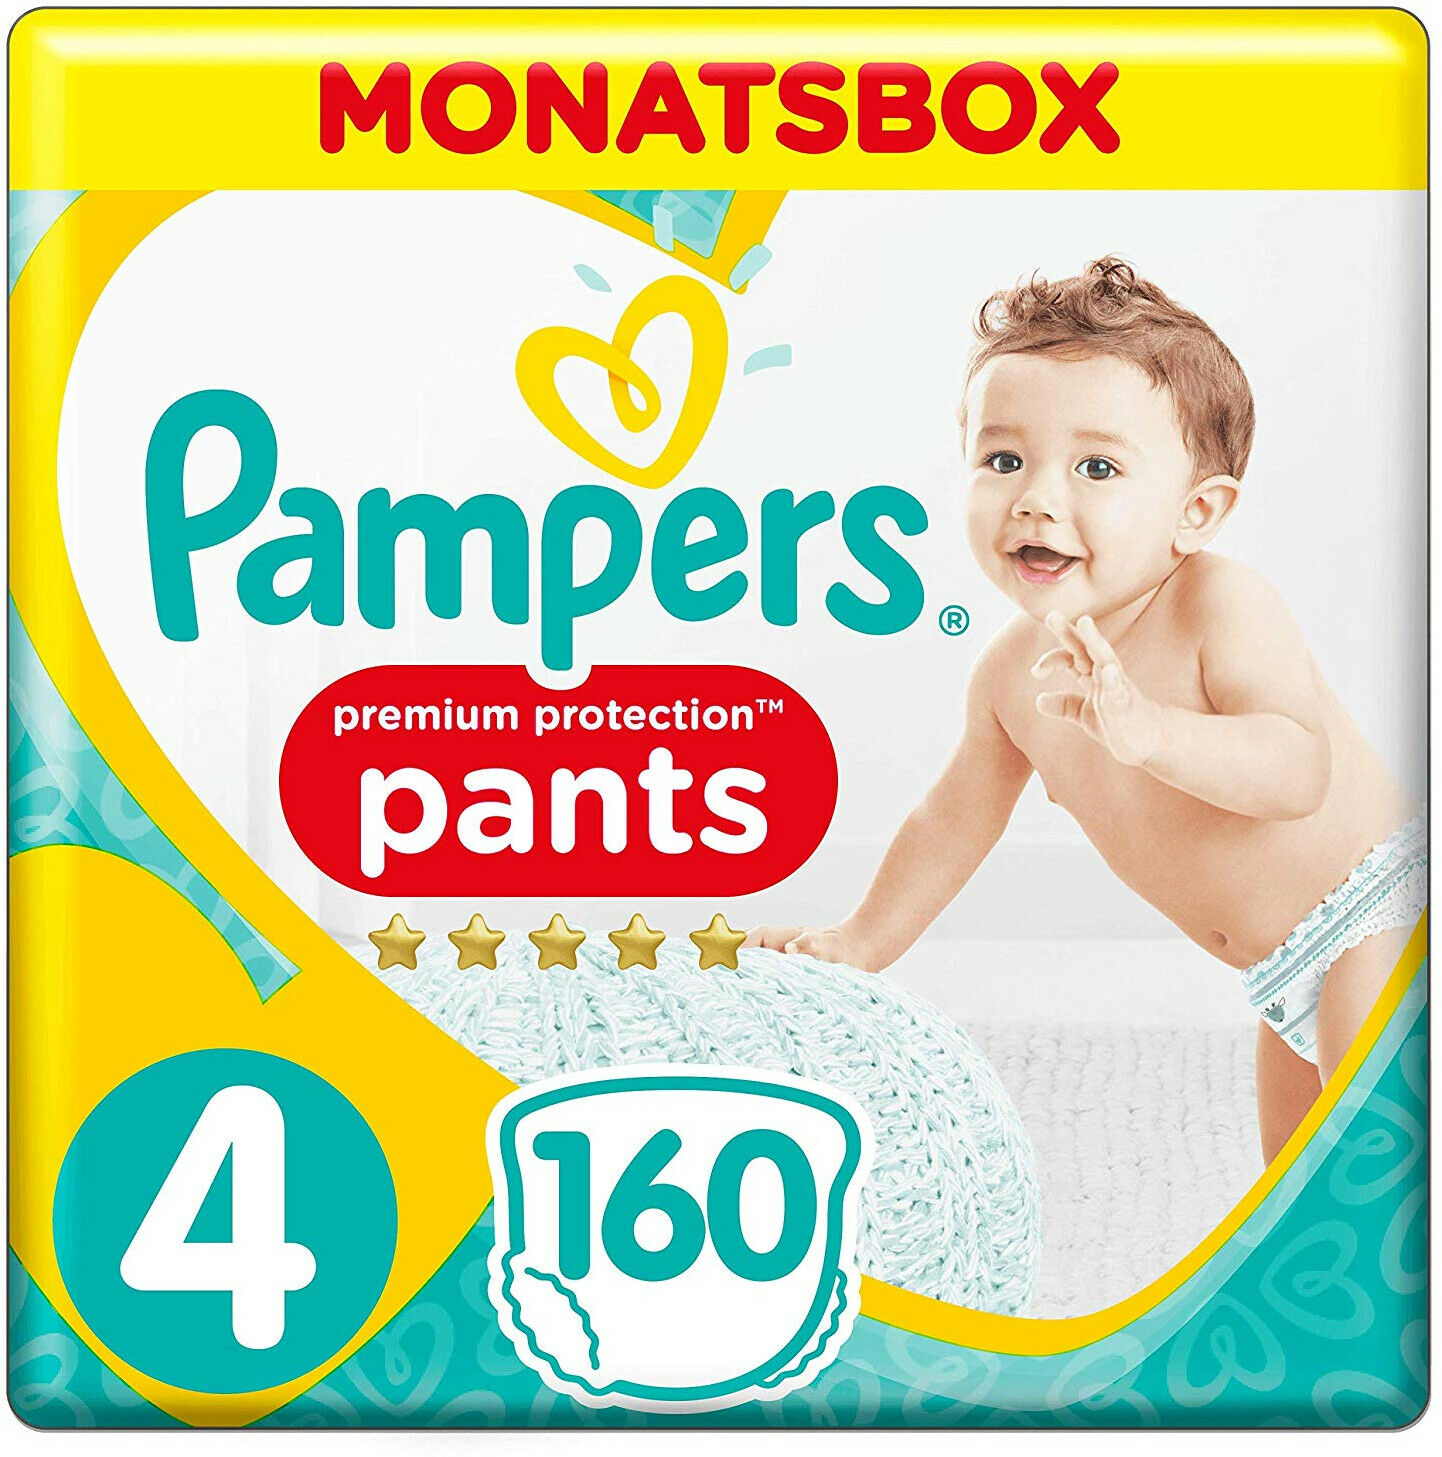 Pampers Premium Protection Active fit Pants Gr. 4 9-15 kg Monatsbox 160 Stück